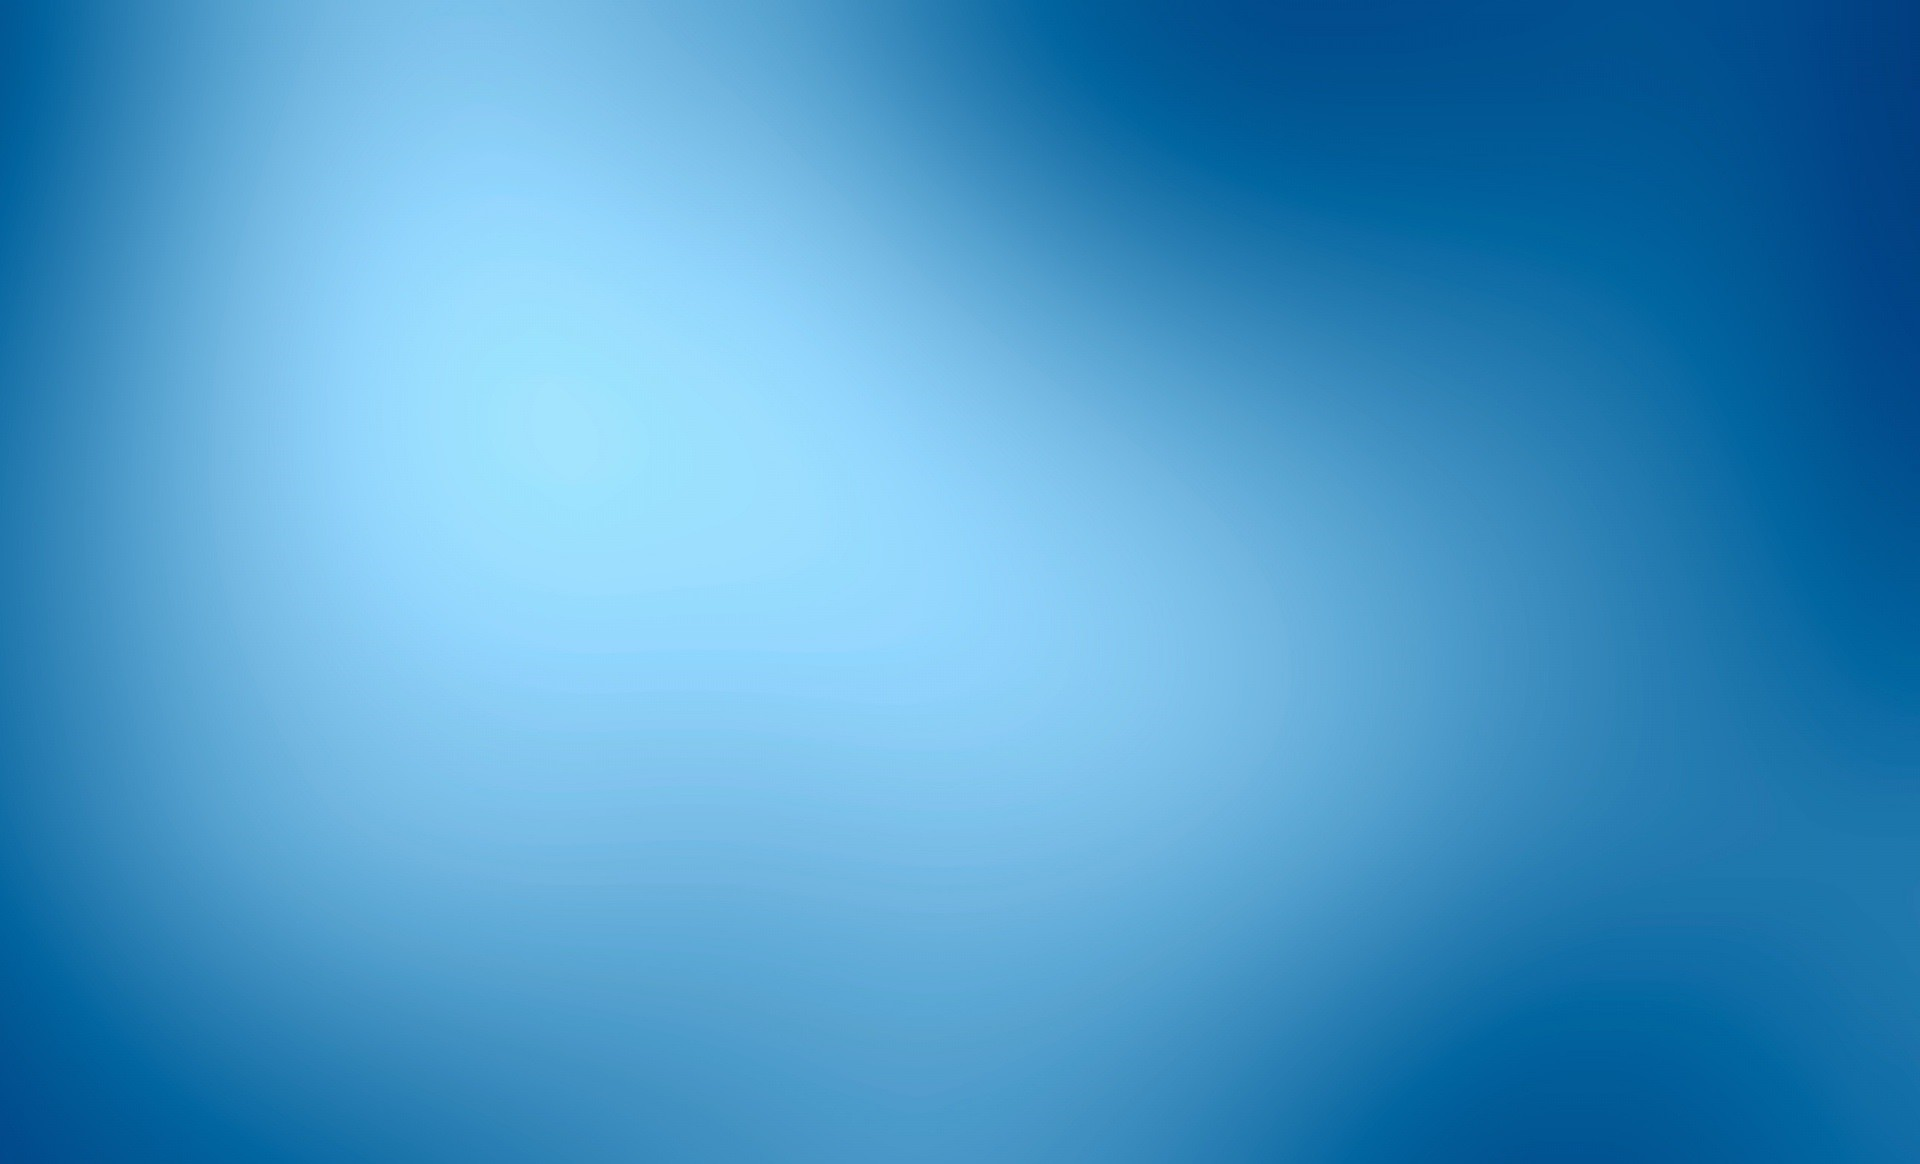 1920x1164 Simple, Blue, Background, Wallpaper, High Resolution Images, Iphone  Wallpaper, Samsung Wallpaper, Desktop Images For Mac, Windows Wallpaper,  Amazing, ...